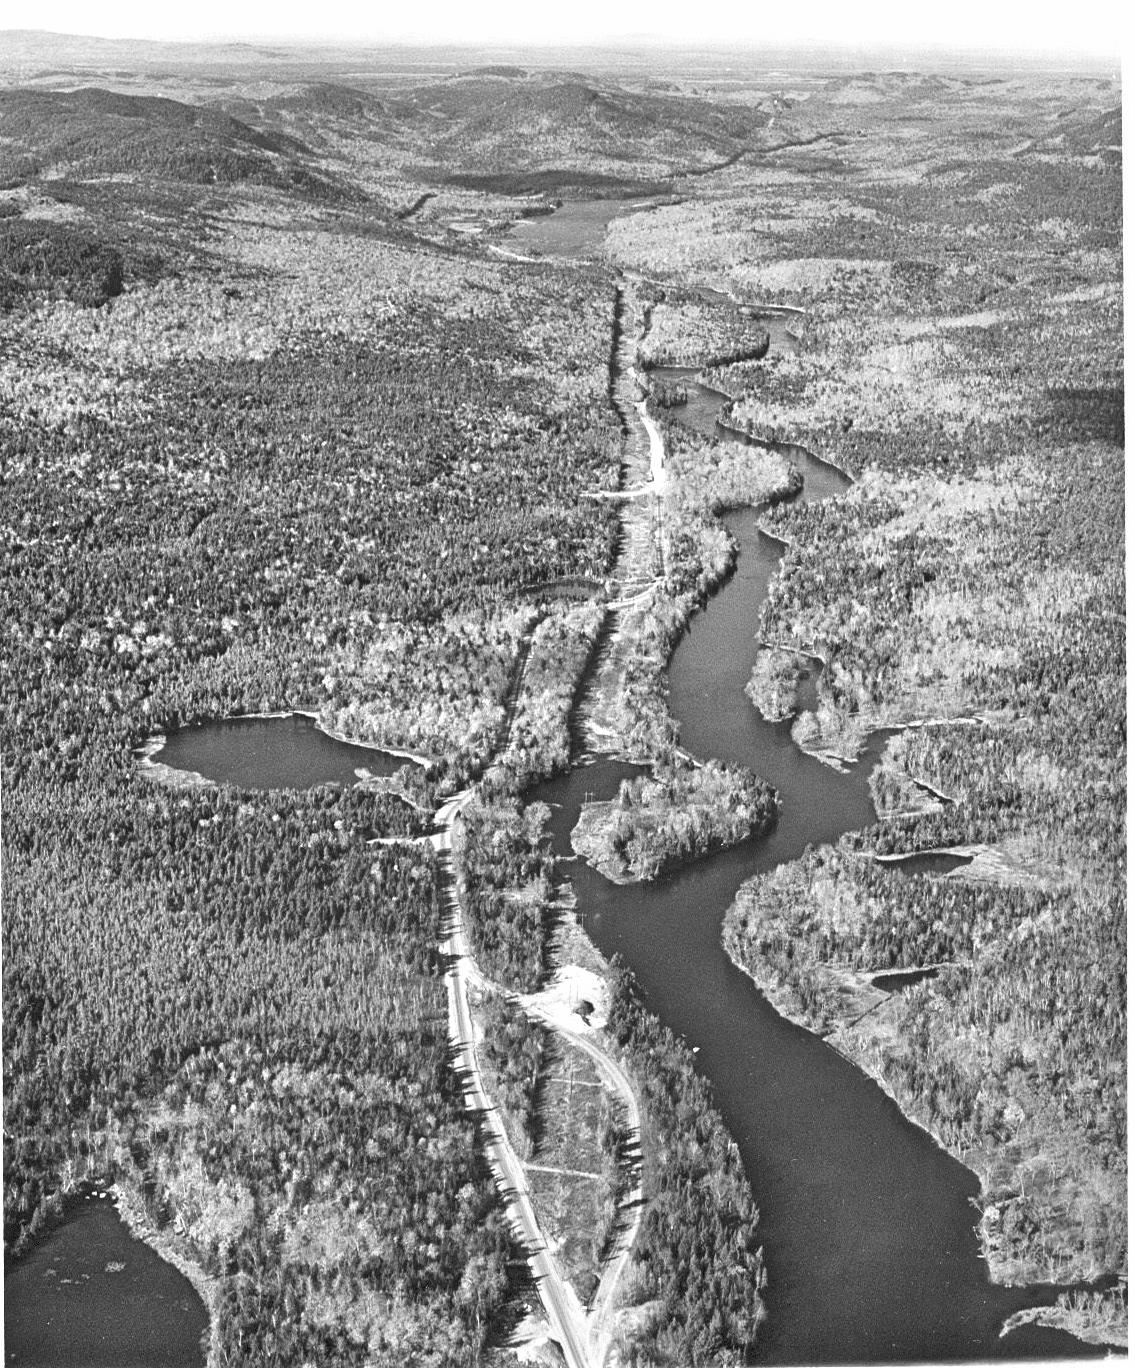 Aerial view of the West Branch and Golden Road